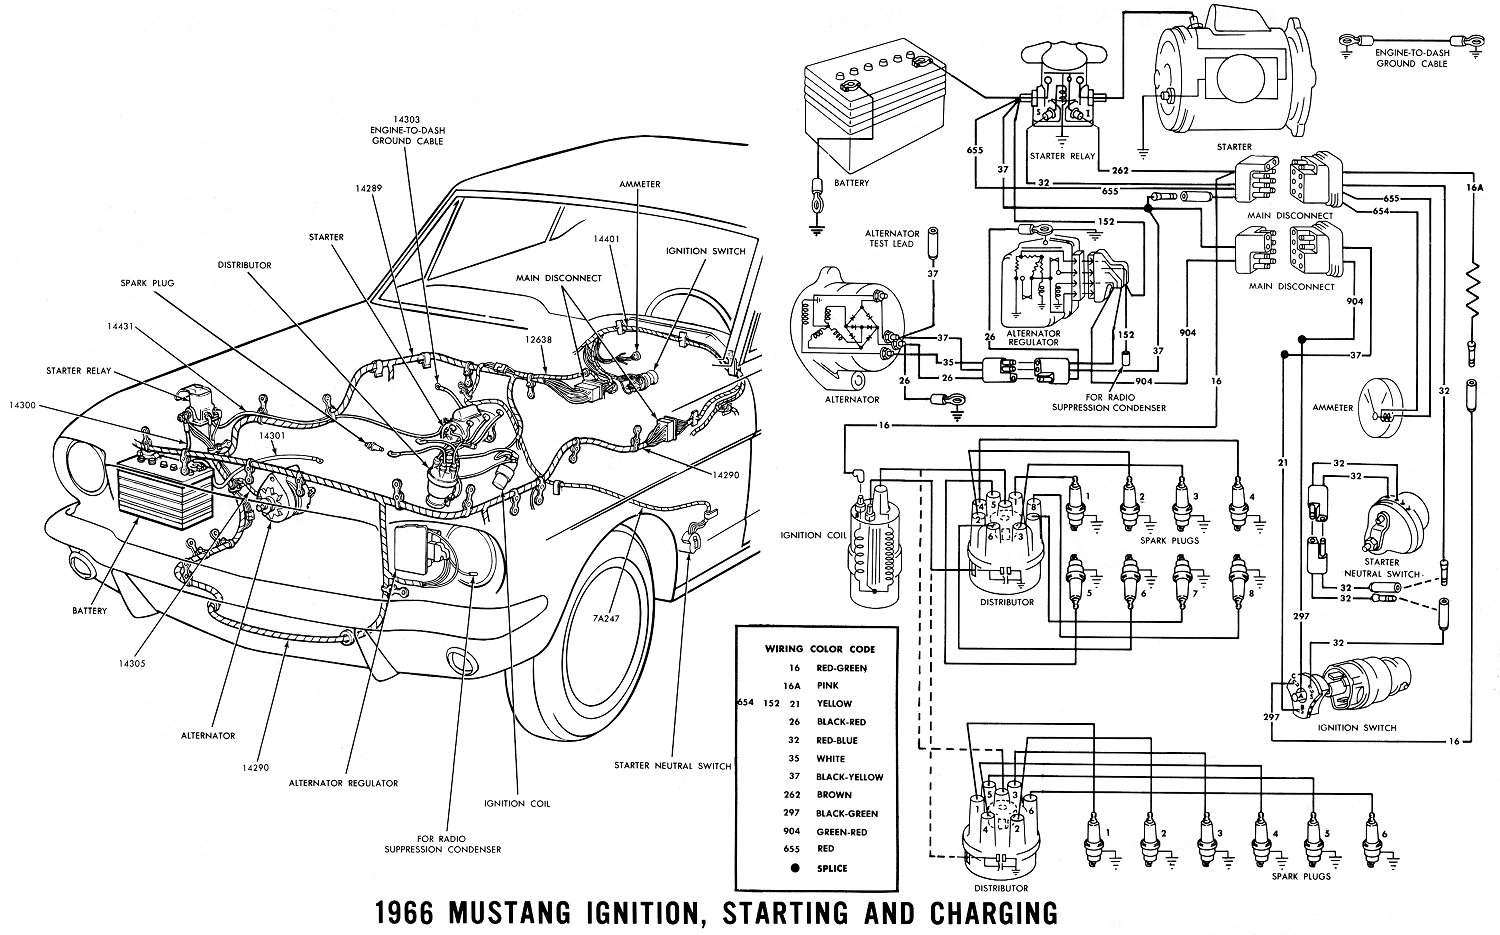 1966 mustang wiring diagrams average joe restoration rh averagejoerestoration com 67 Mustang Alternator Wiring Diagram Mustang Wiring Harness Diagram